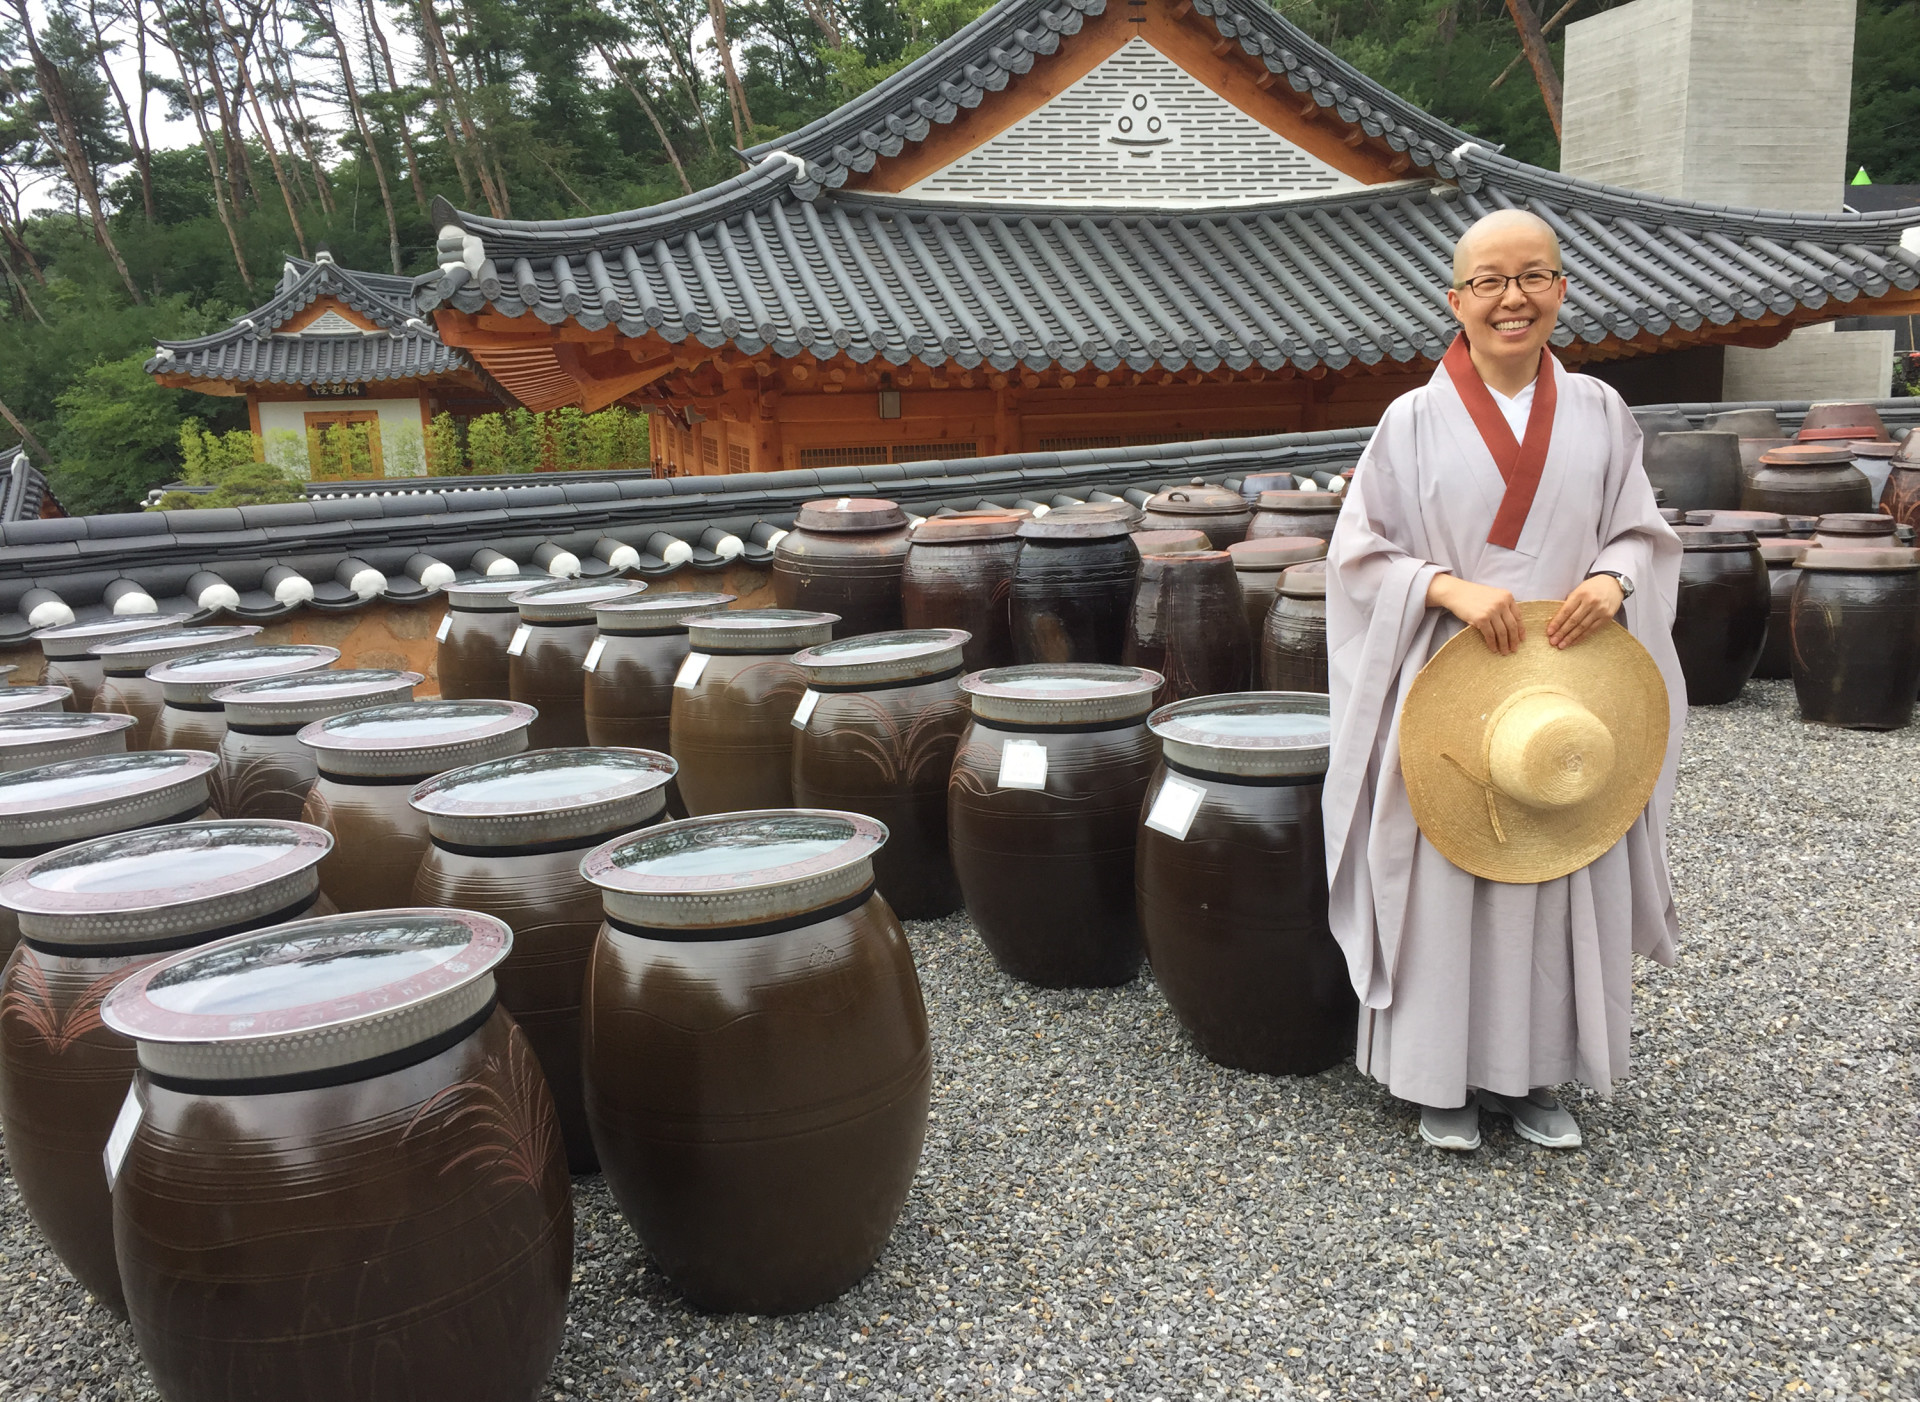 Sun Woo directs the visitor program at Jingkwansa, a Buddhist temple outside Seoul famous for preserving the art of Korean temple food. Behind her are giant jars filled with fermented soybeans.